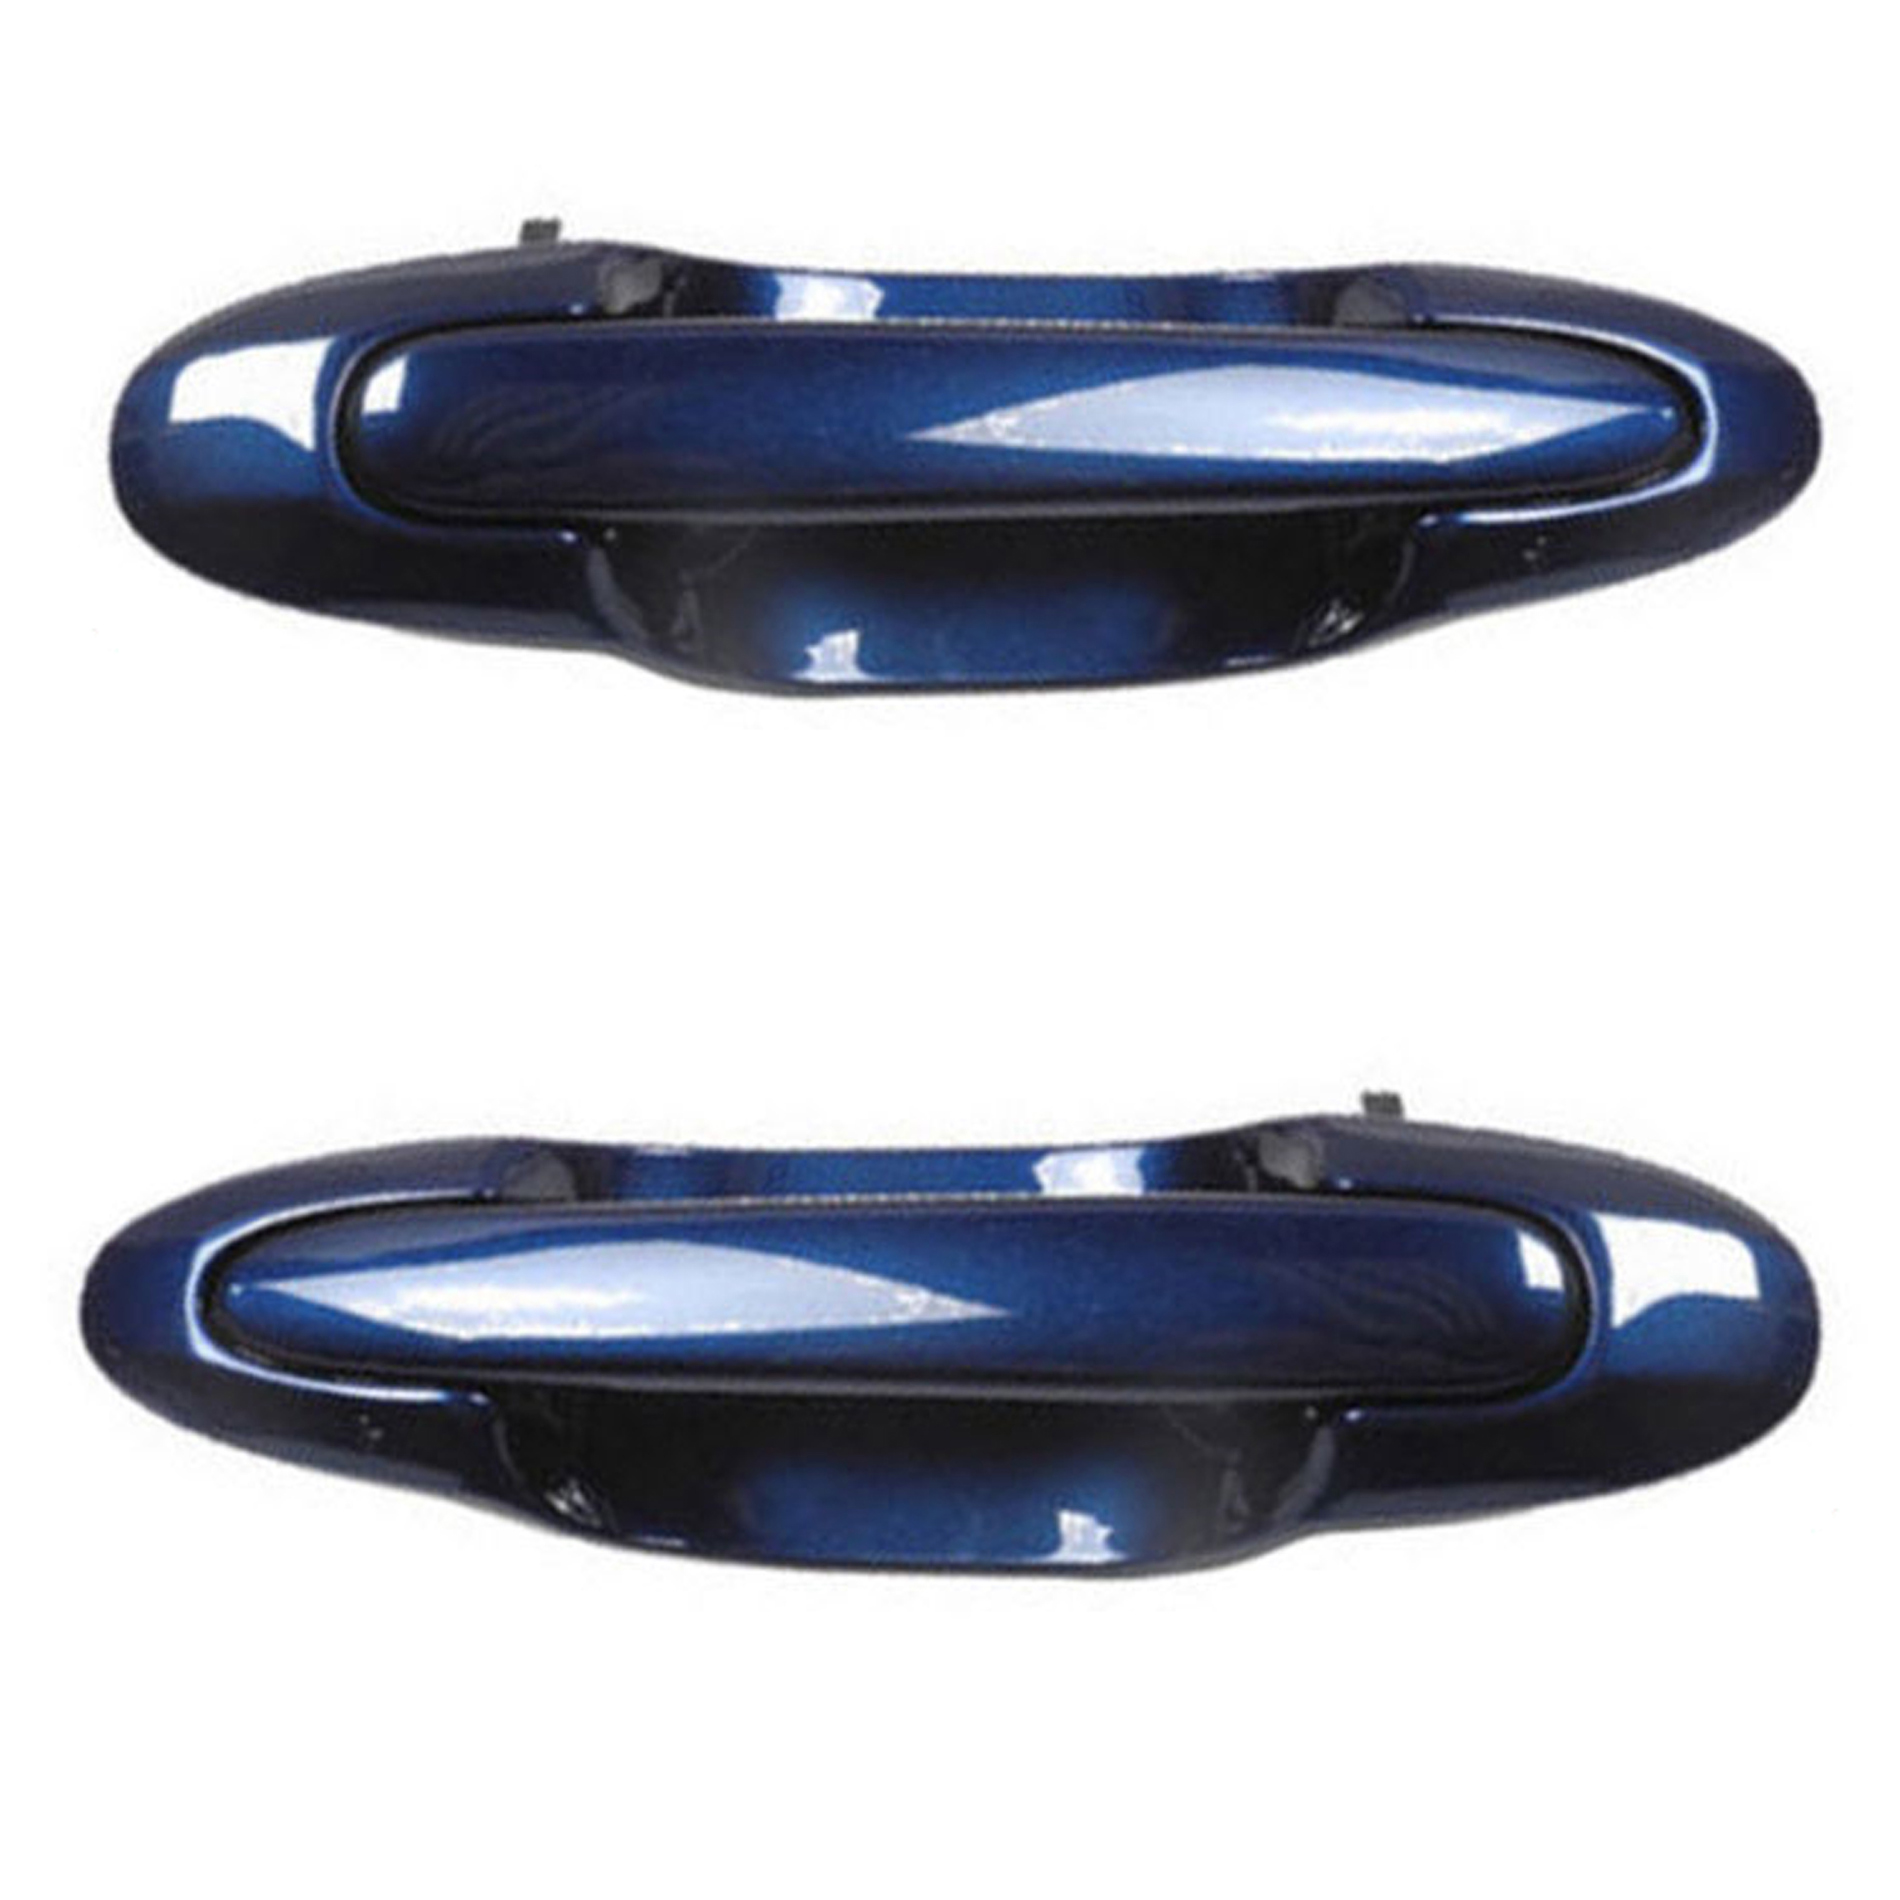 Brand New For Rear 2000-2006 Mazda MPV Blue Pacific 25B Outside Outer Door Handle 00 01 02 03 04 05 06 2PCS